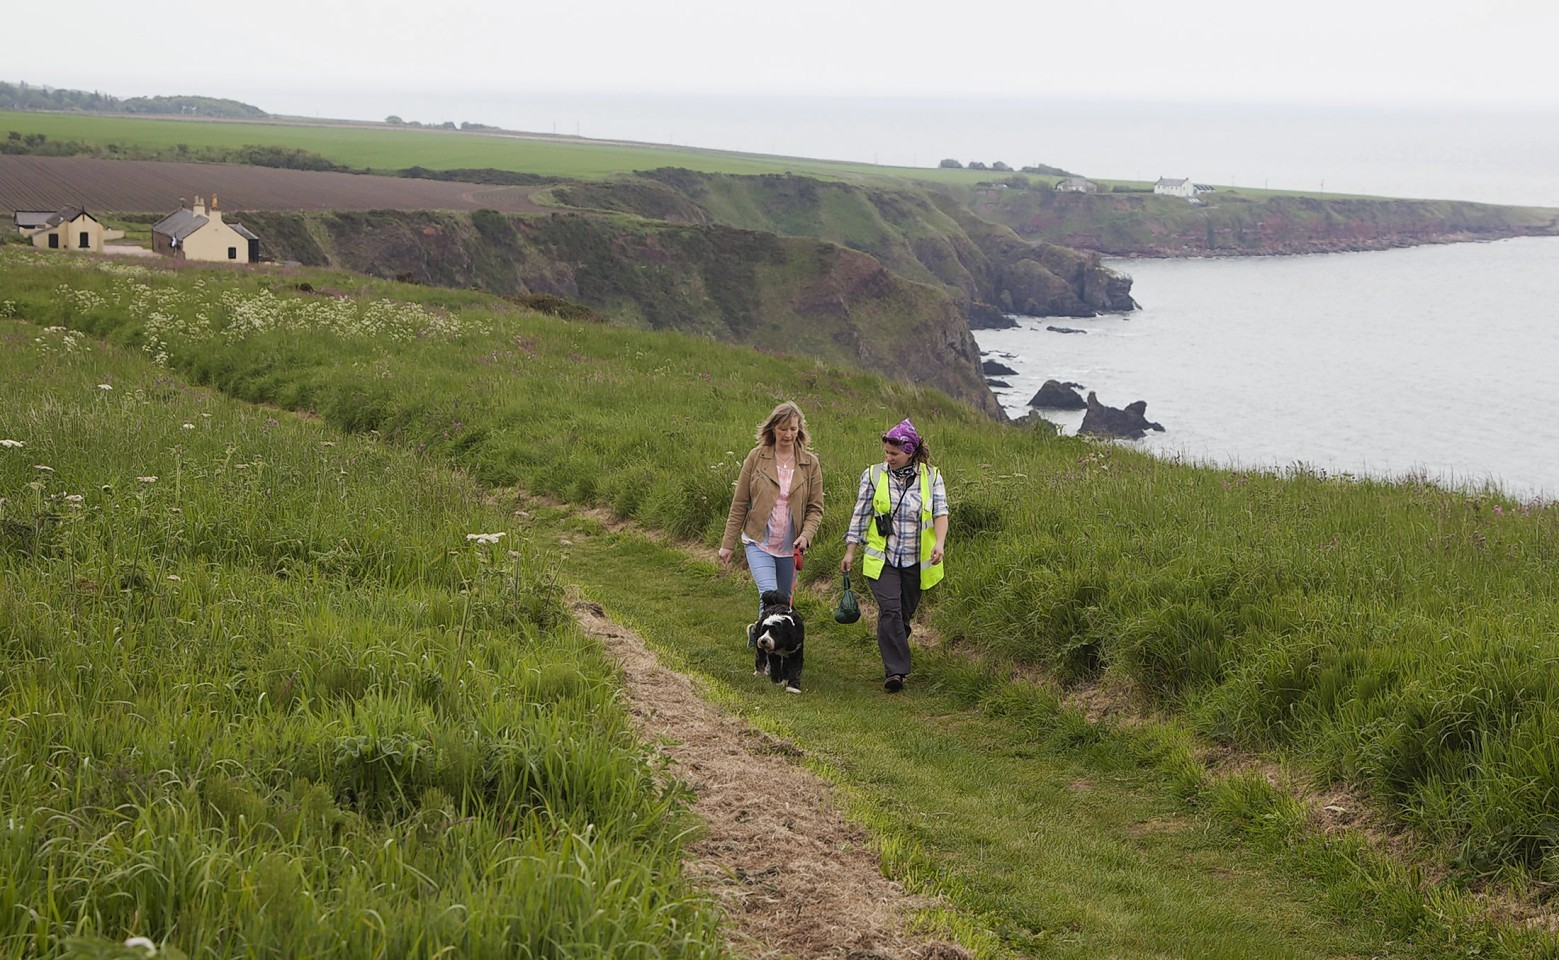 Rat poison has been left on the public path at the St Cyrus Nature Reserve